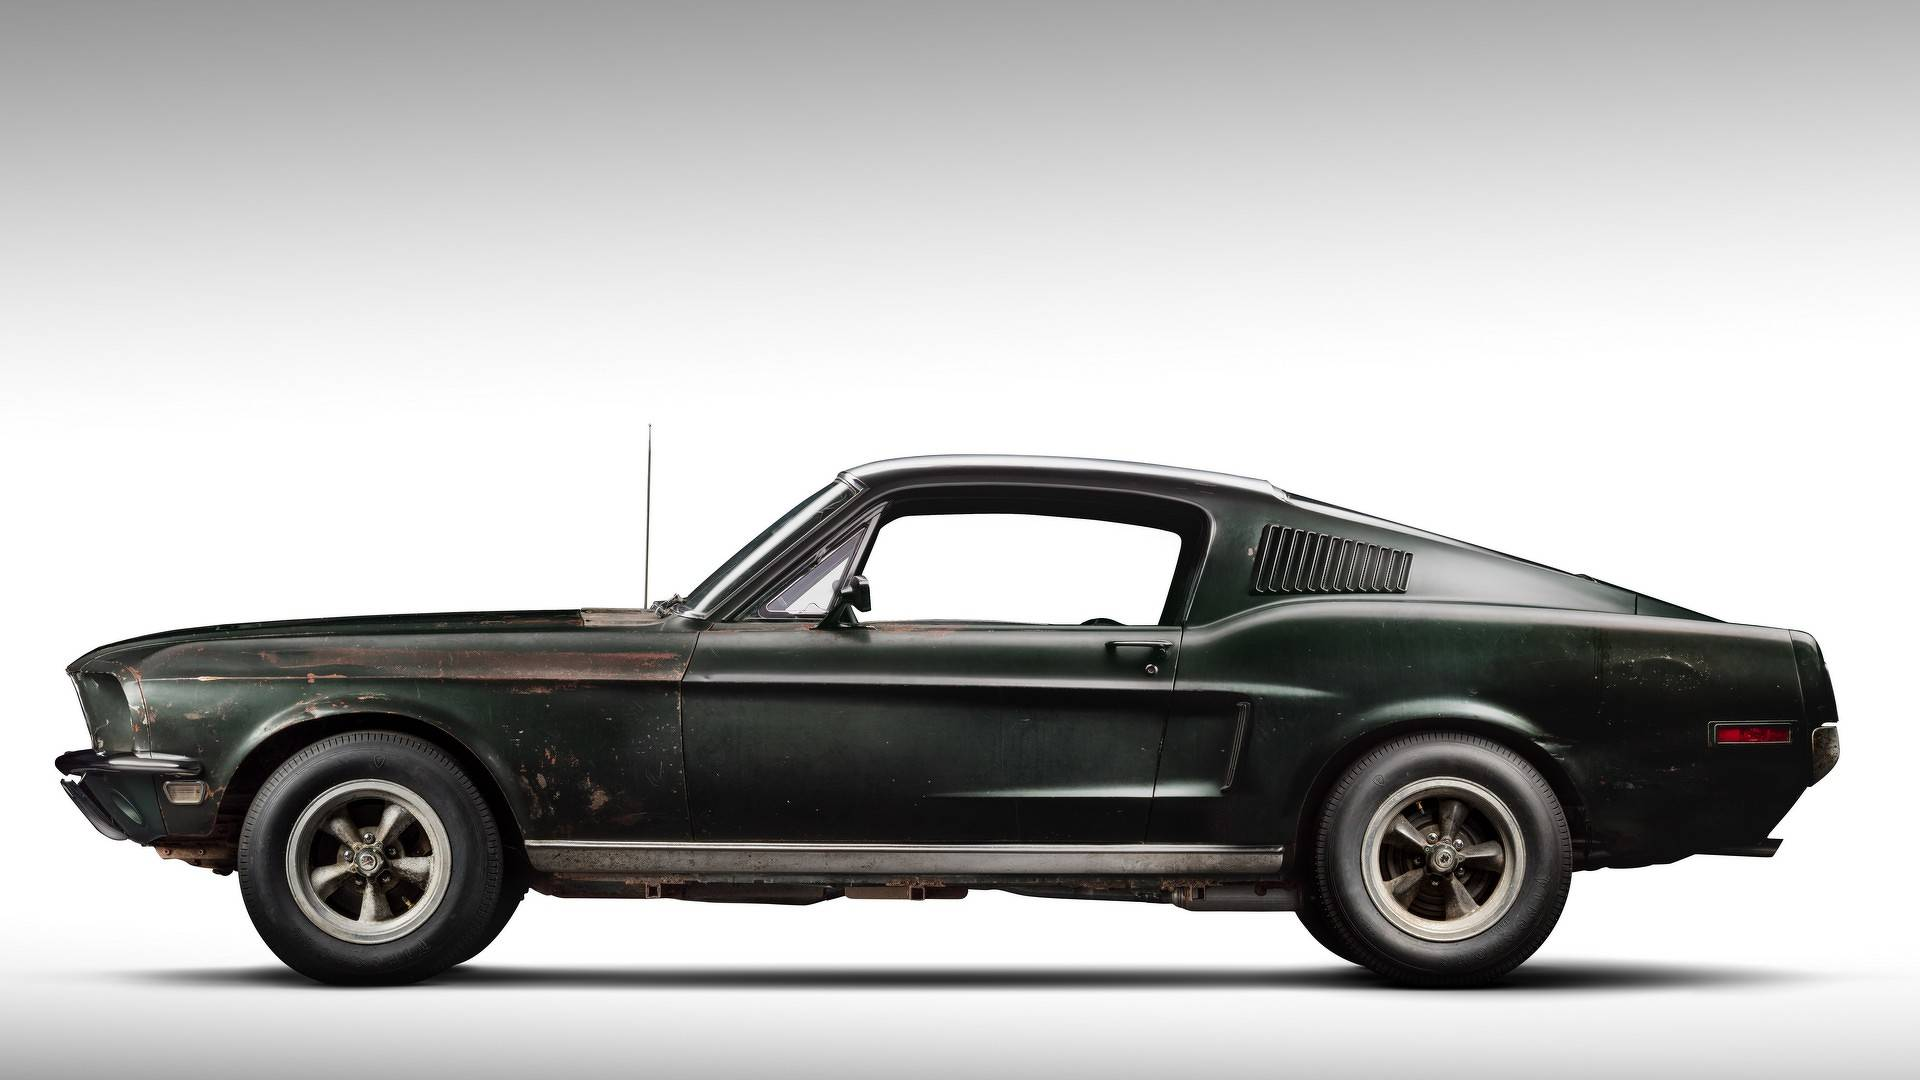 1968_Ford_Mustang_Bullit_original_movie_car_0003